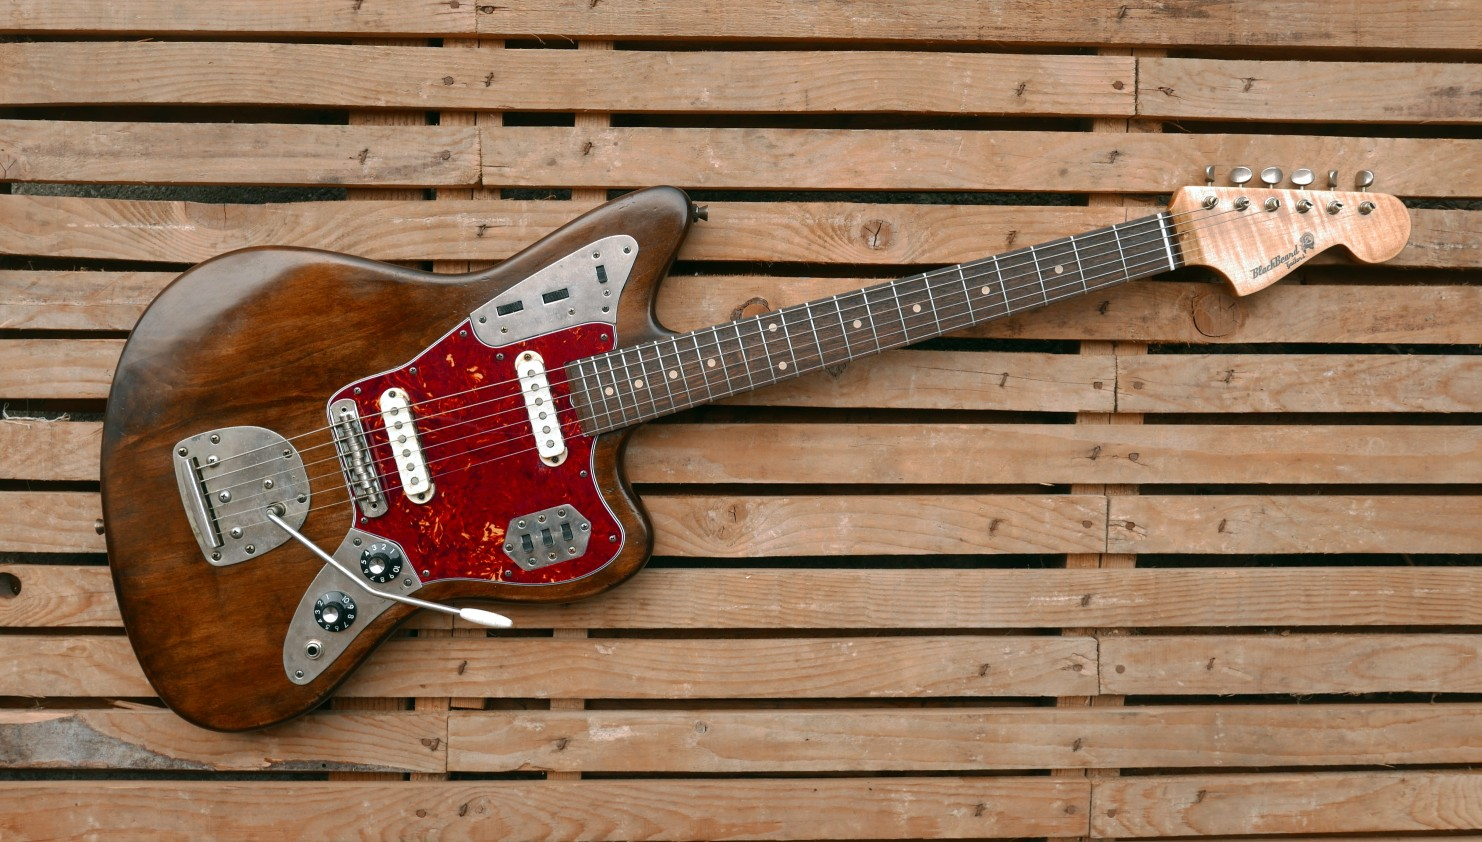 jaguar guitar front